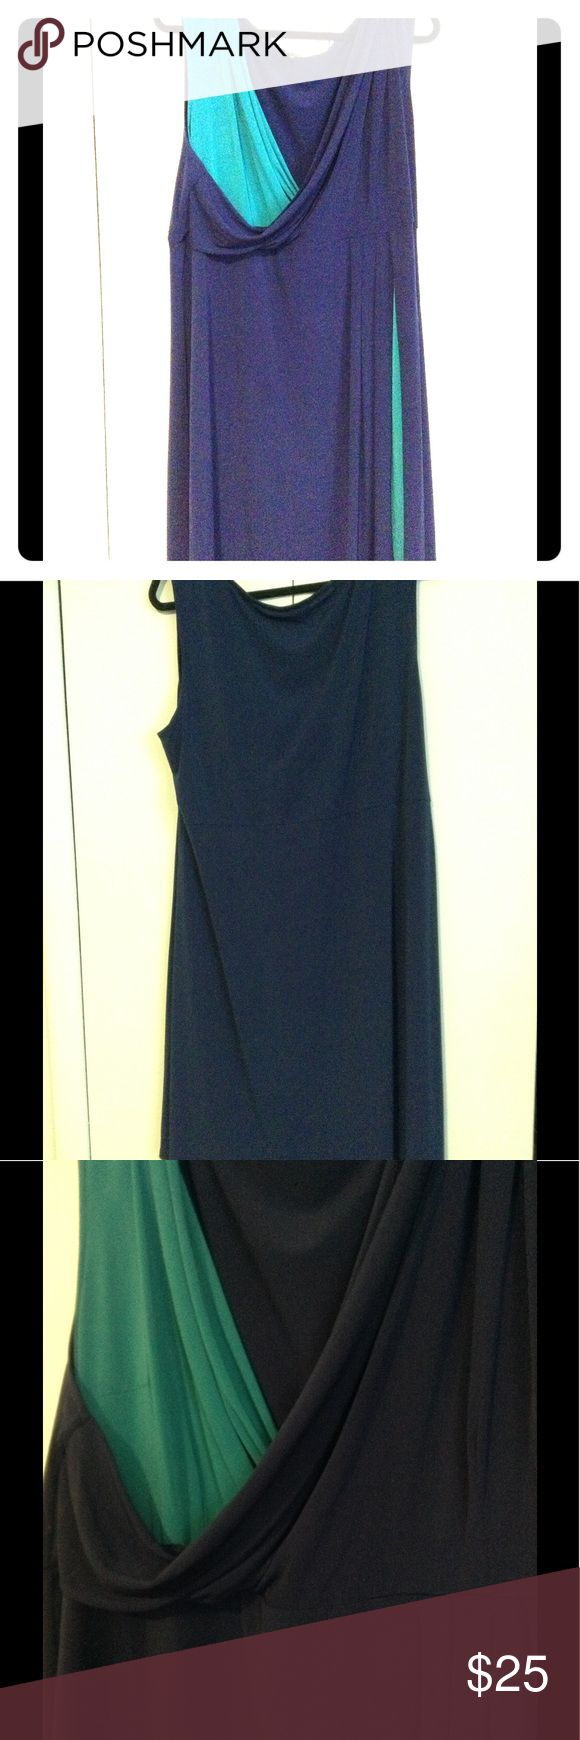 Navy & Teal Dress Perfect for a casual day or a night out Daisy Fuentes Dresses